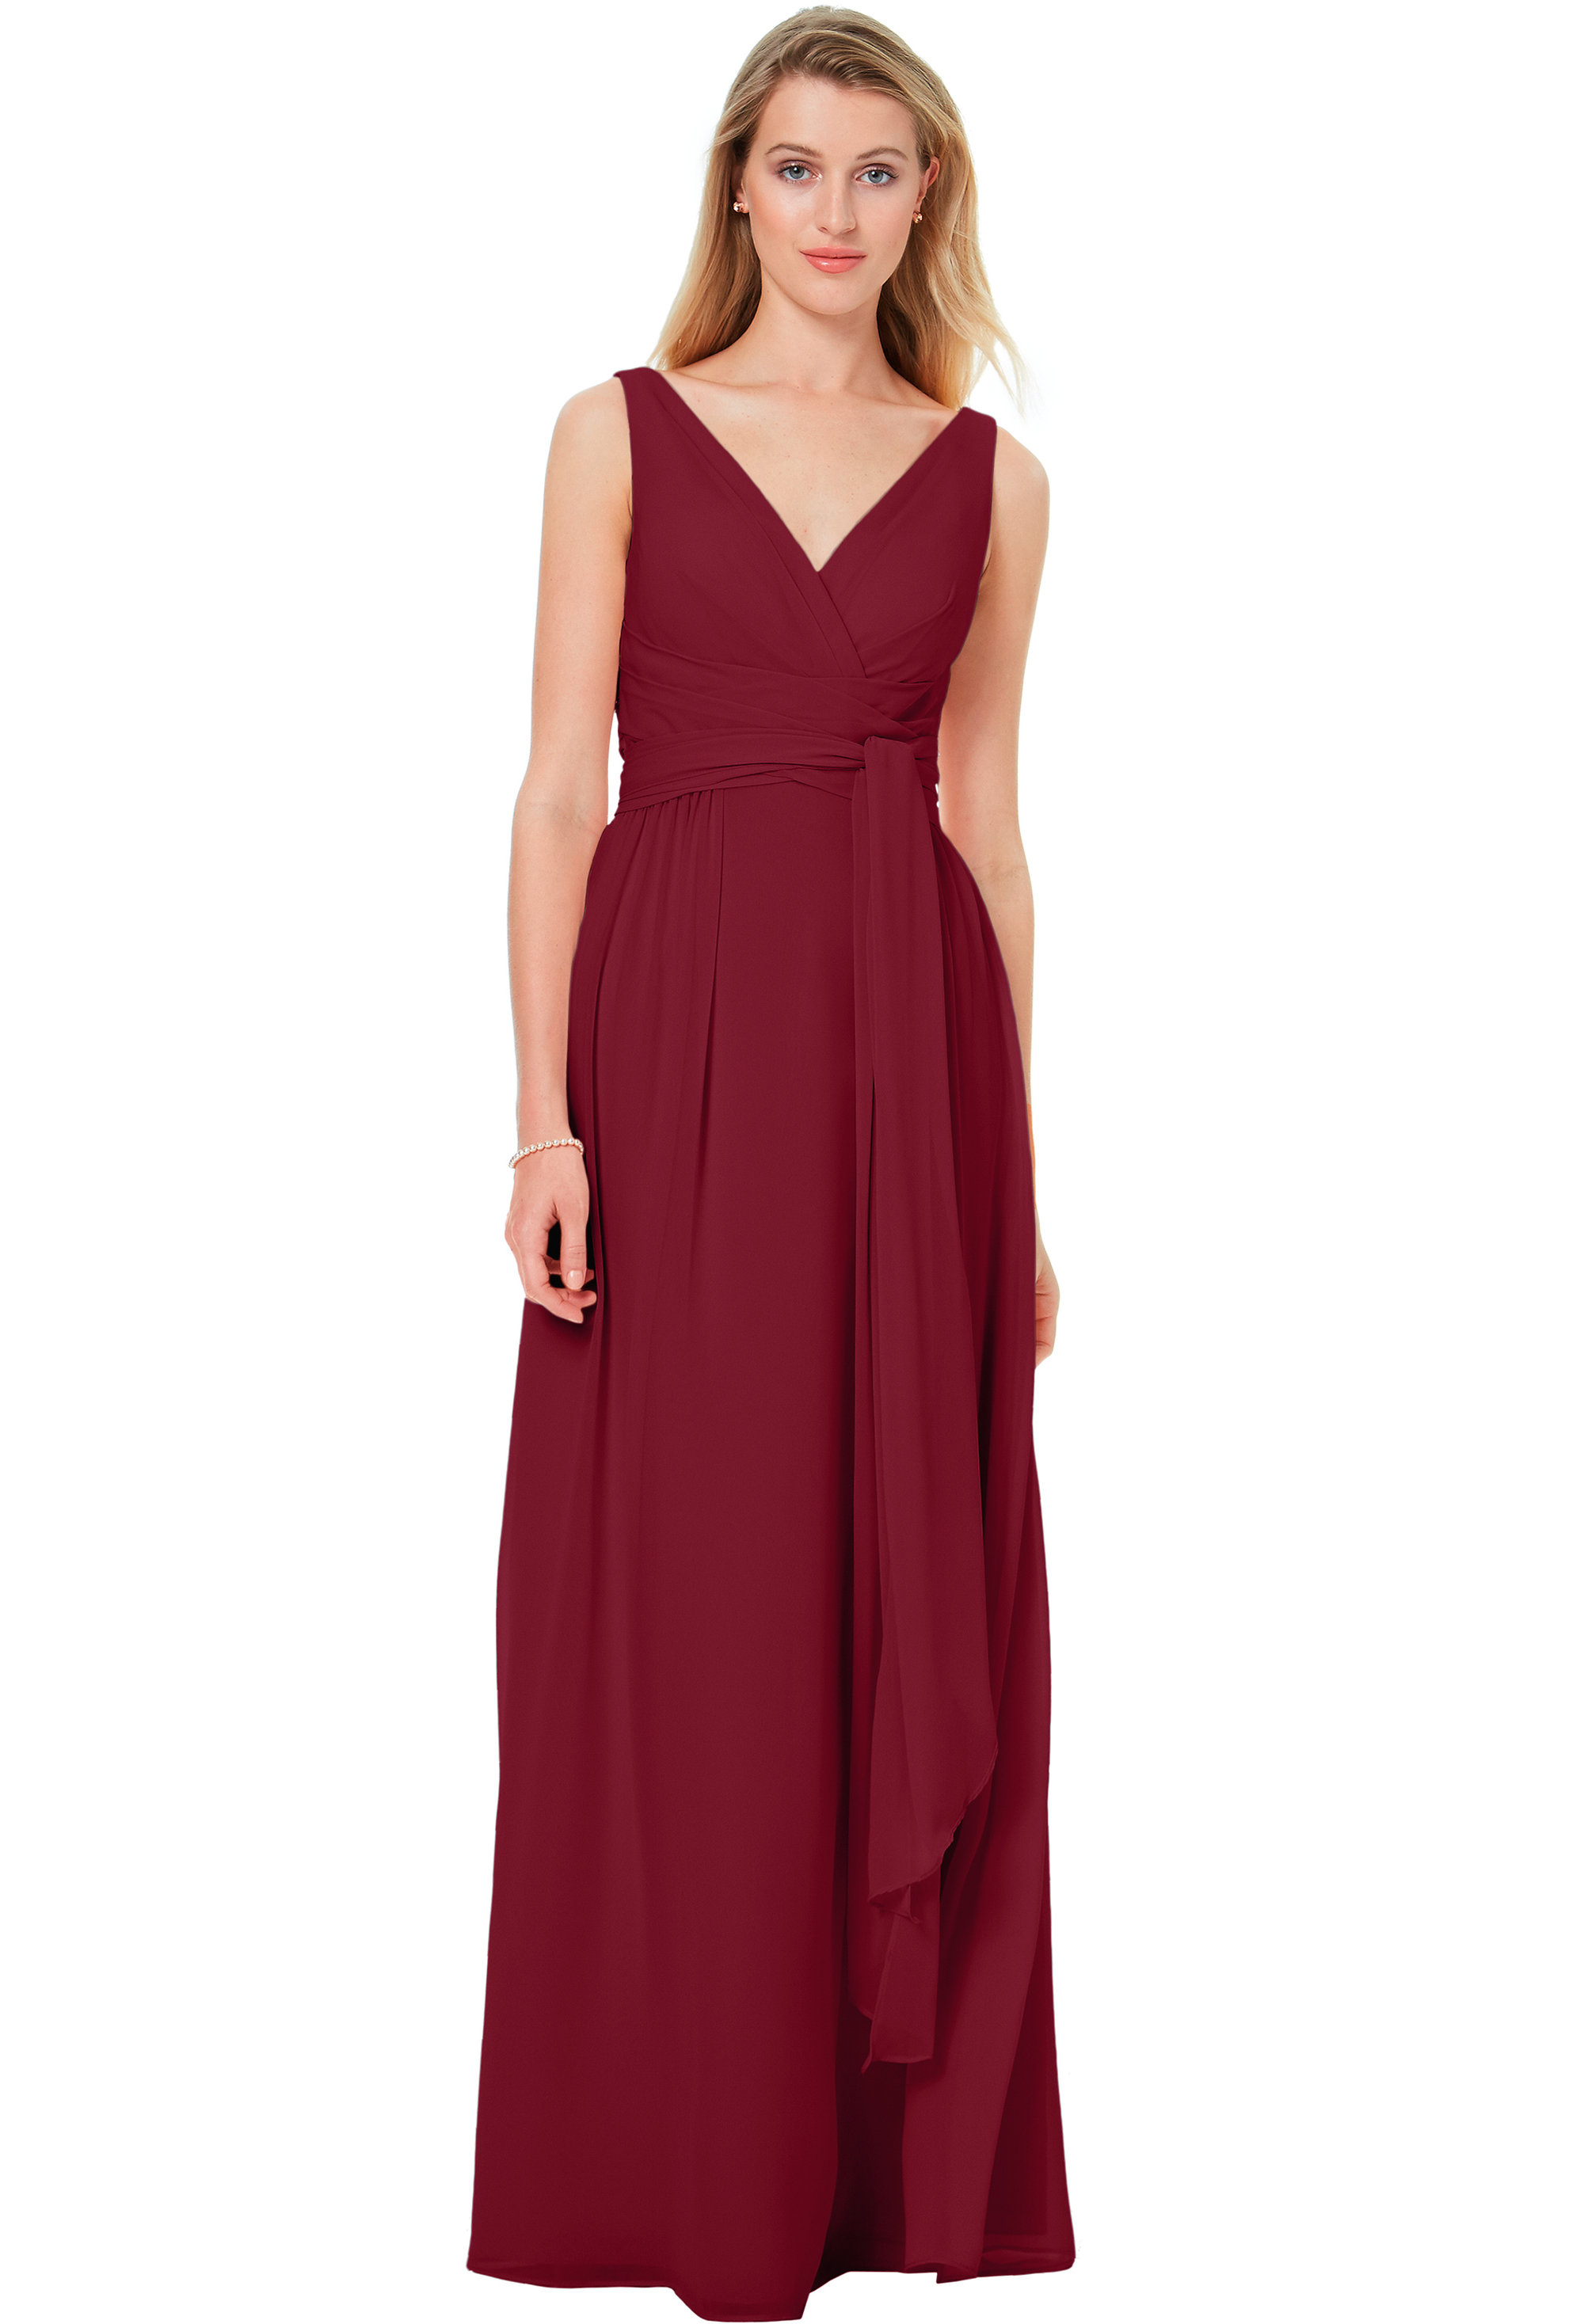 Bill Levkoff CRANBERRY Chiffon Sleeveless A-line gown, $220.00 Front